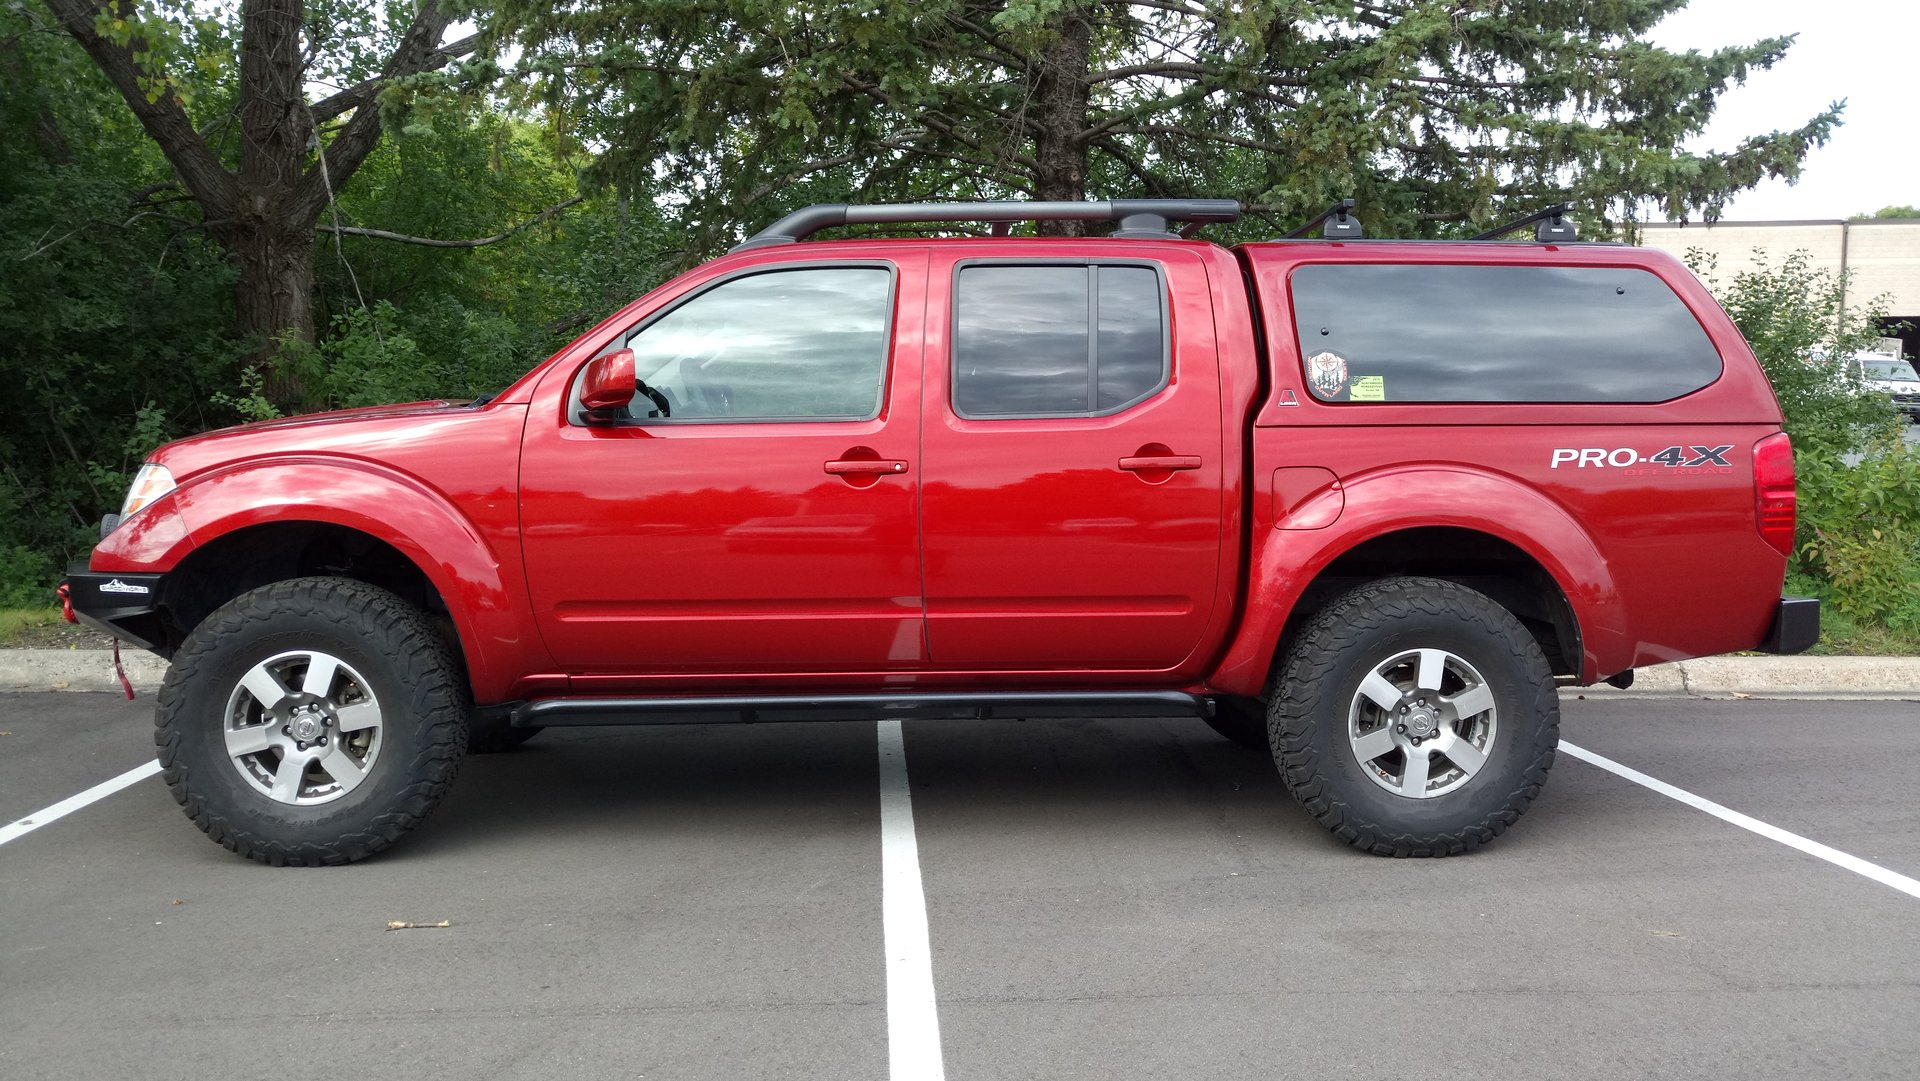 UPDATED* Suspension Lifts and Body Lifts for 2005+ *PLEASE READ